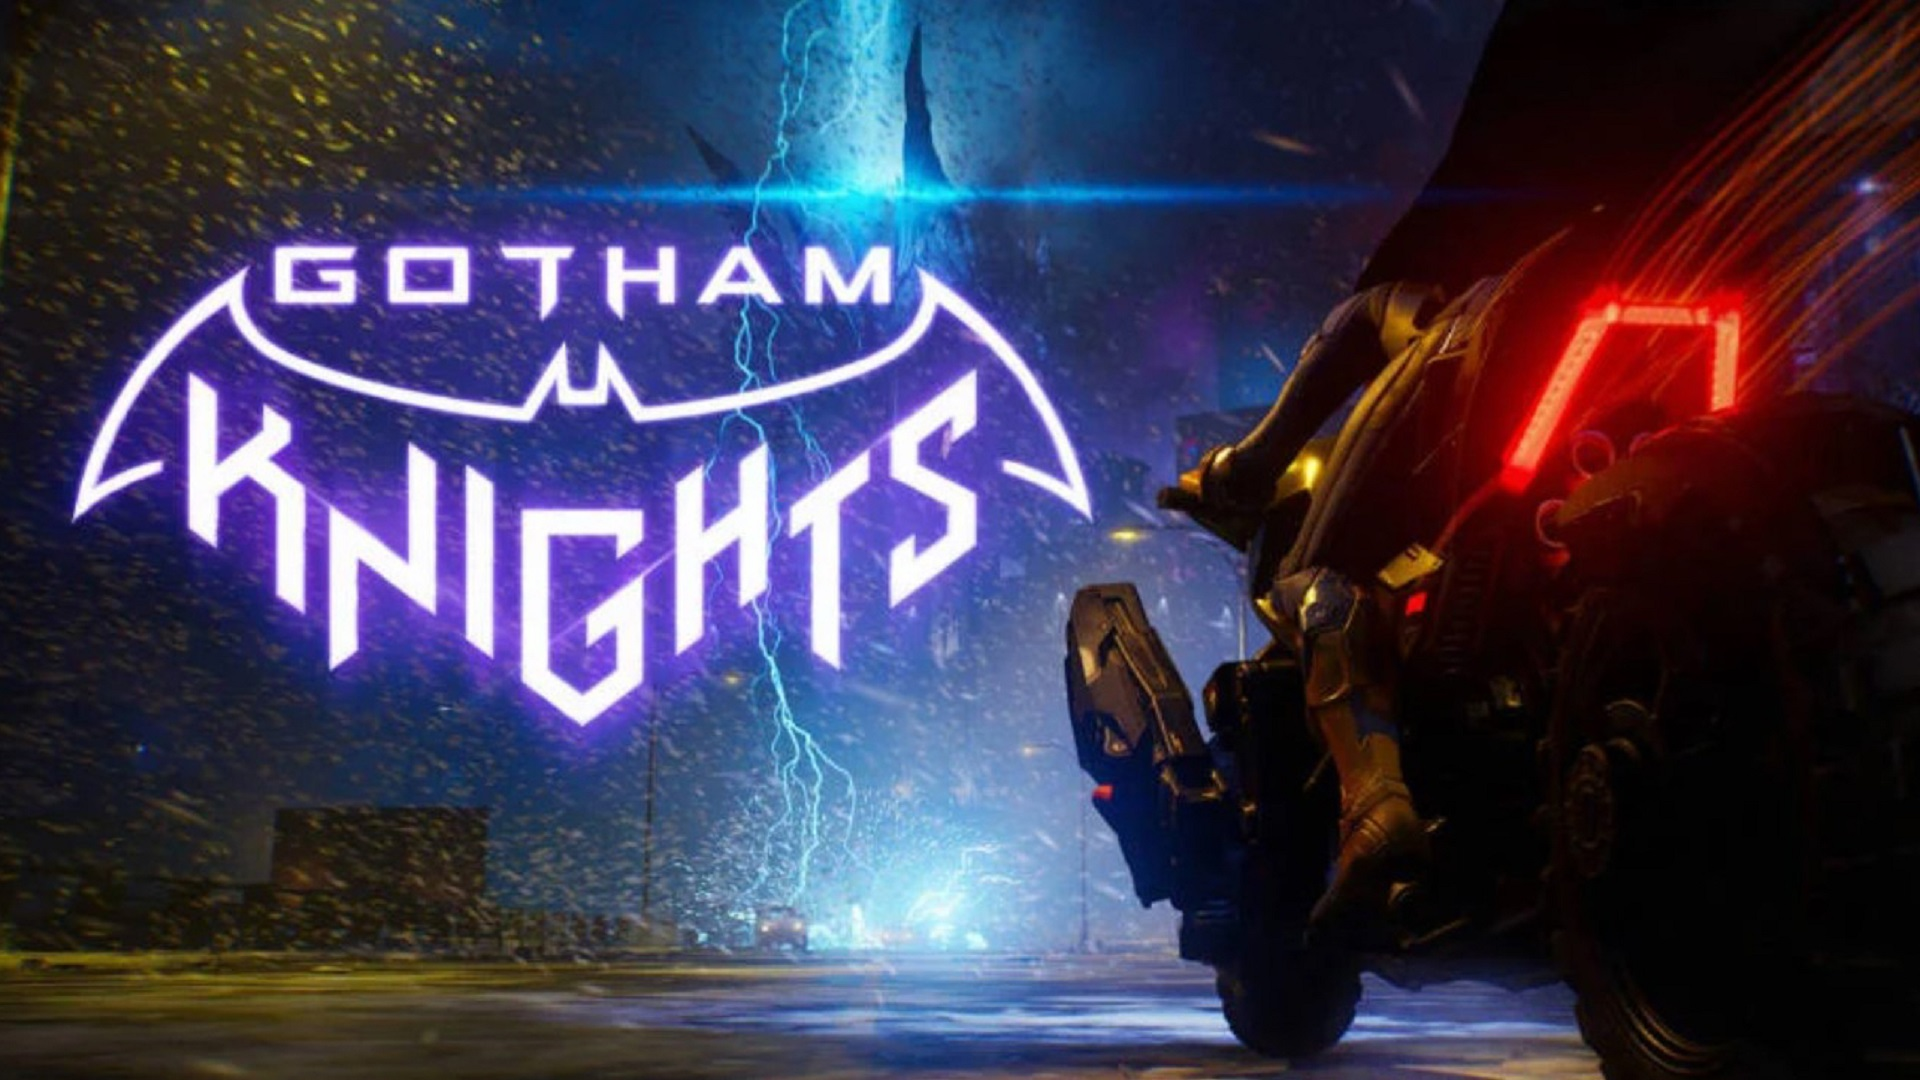 Gotham Knights Shows Glimpses of Alternate Character Skins